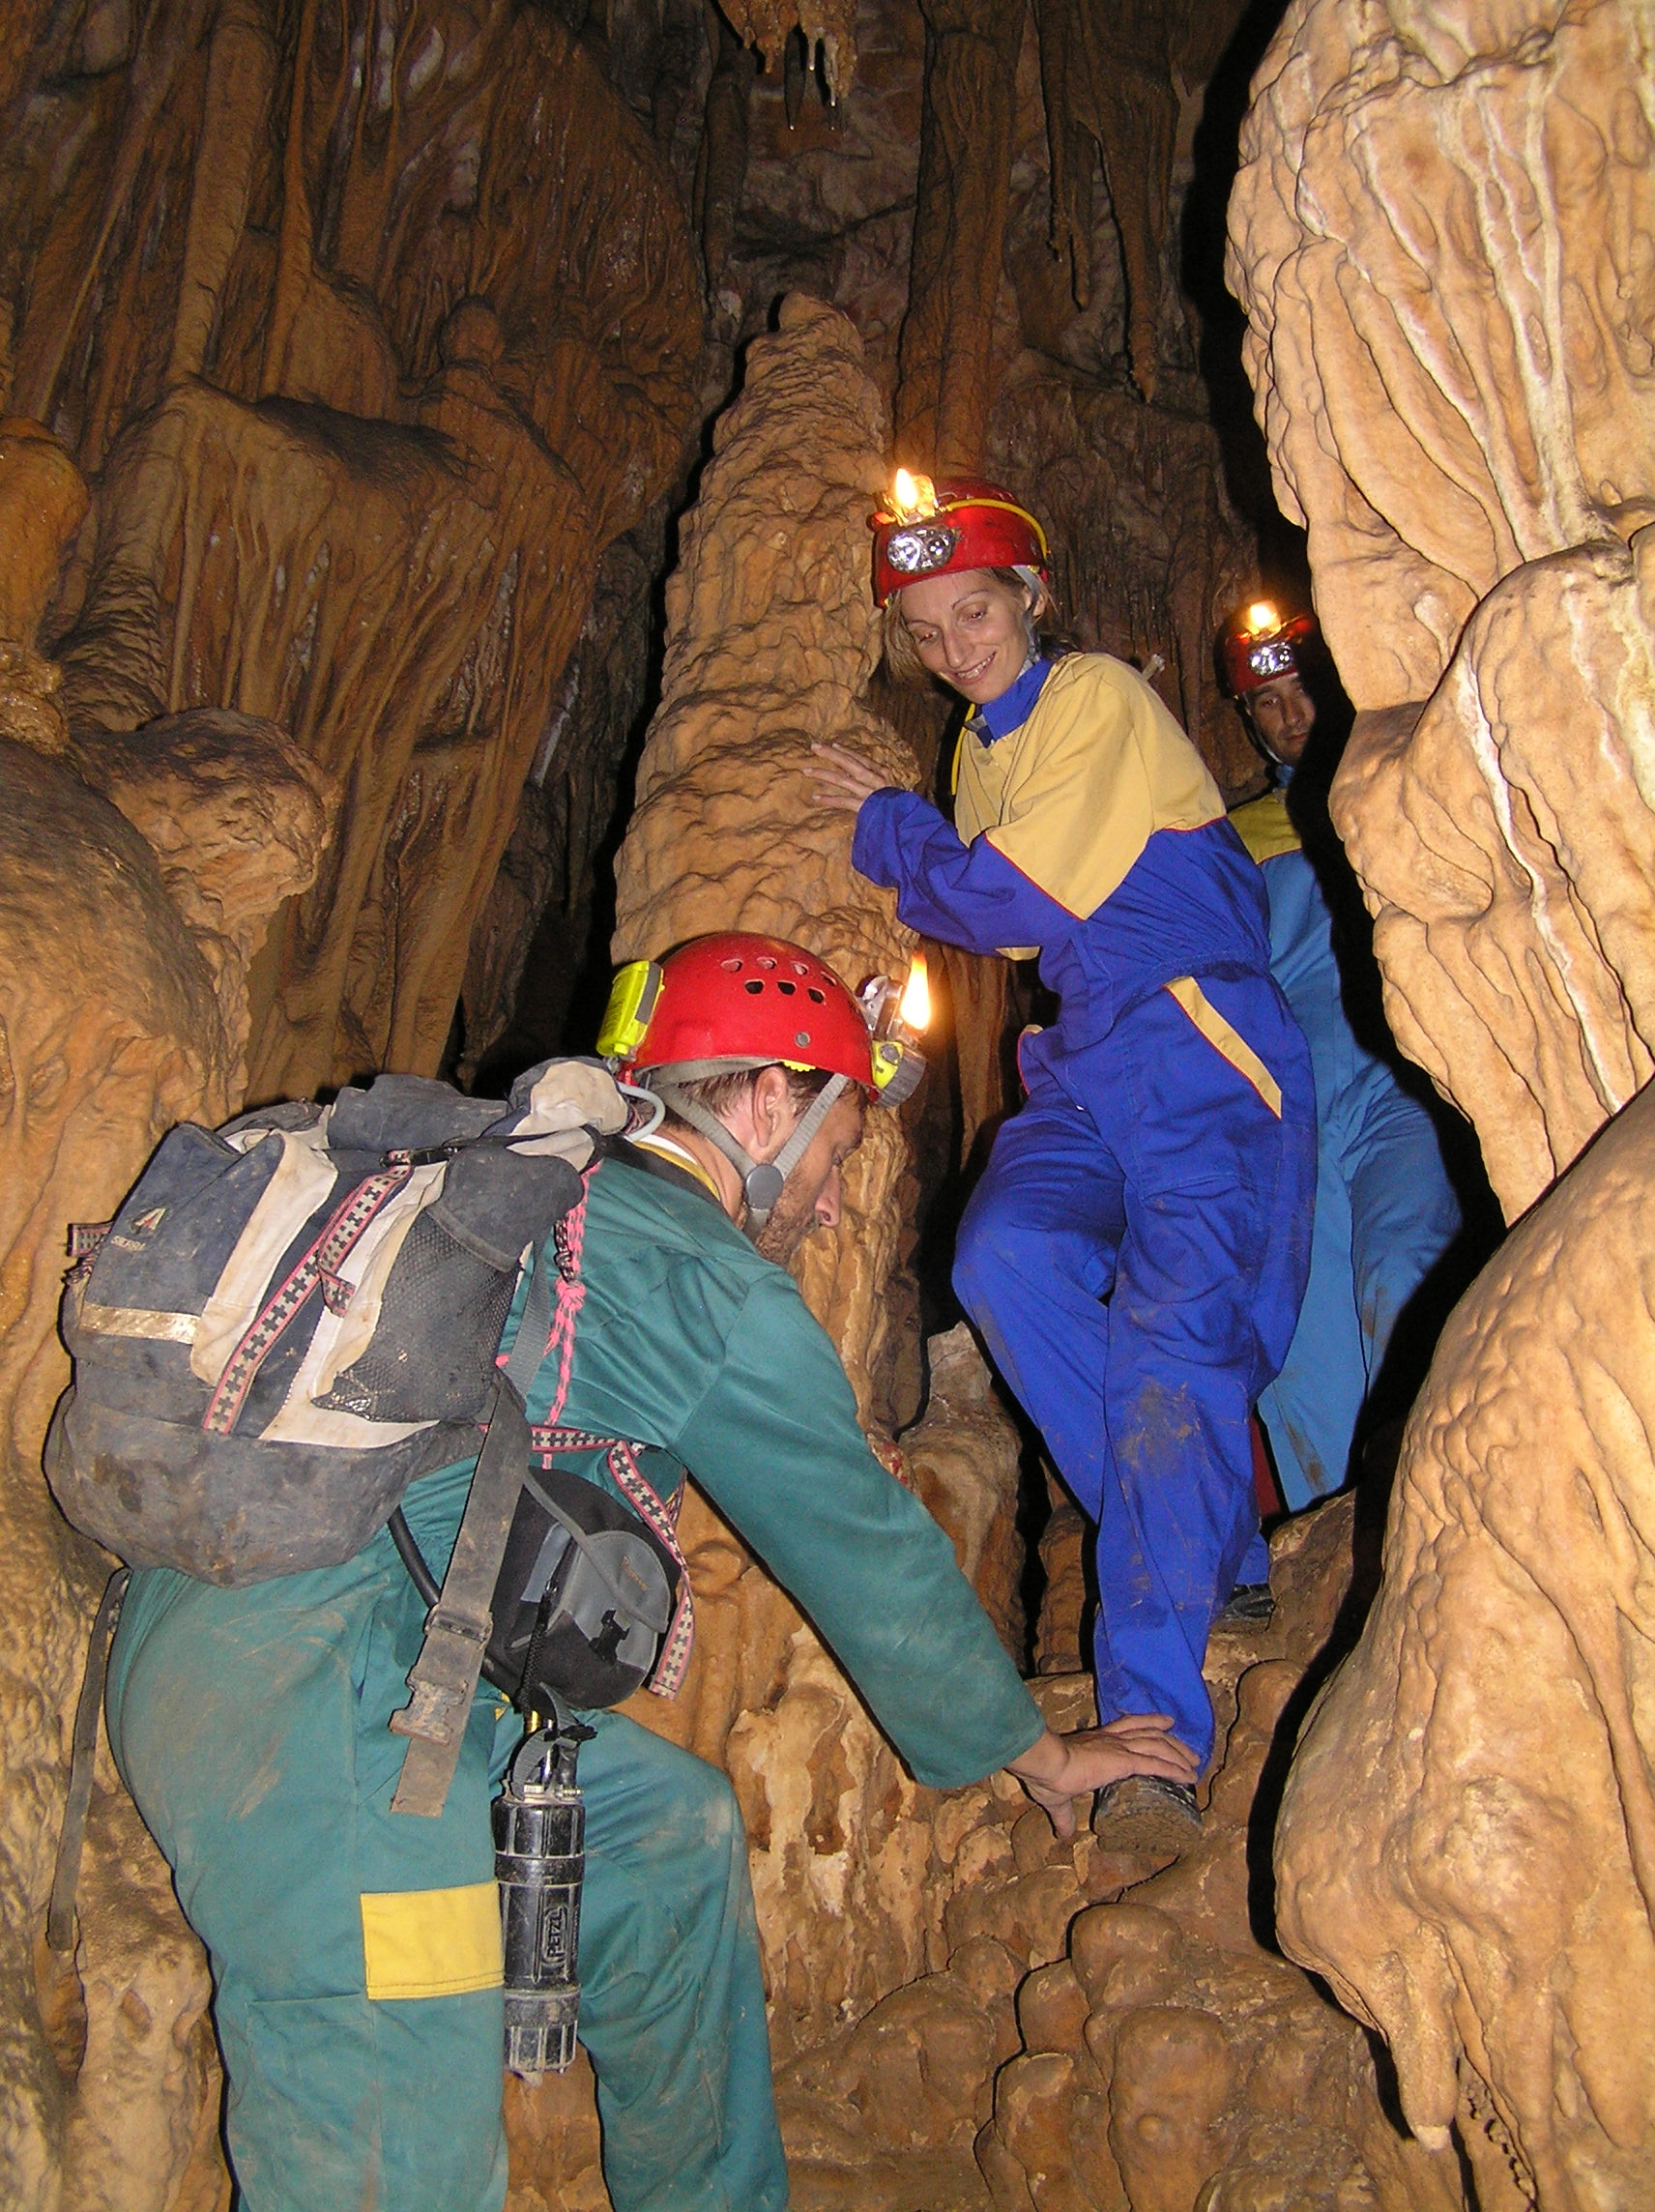 Group of people in tour caving